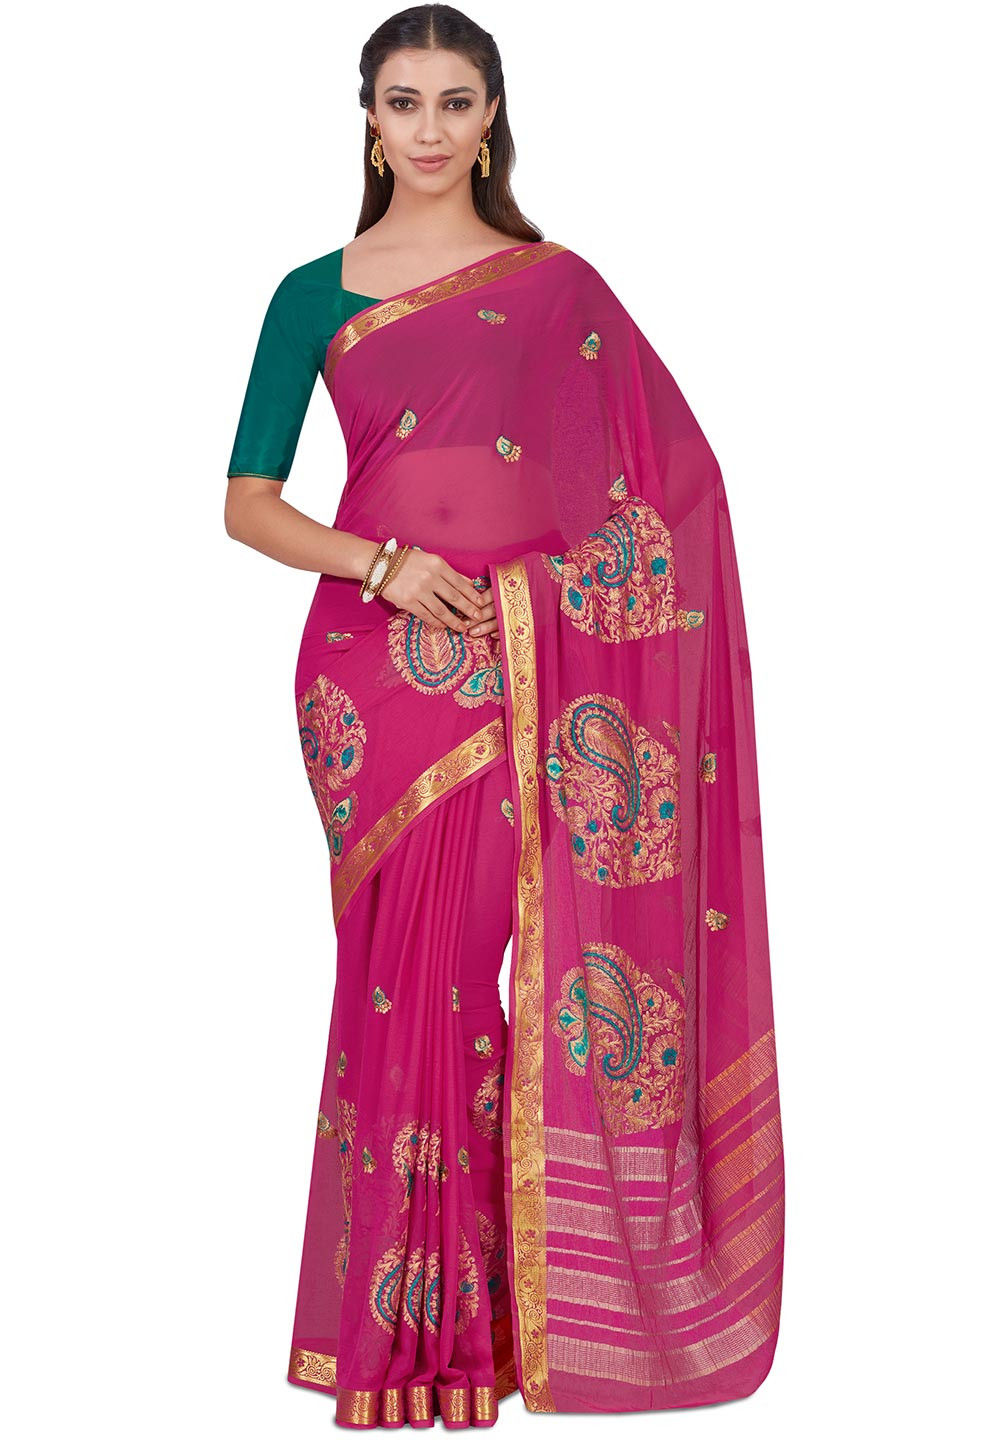 Embroidered Chiffon Saree in Fuchsia